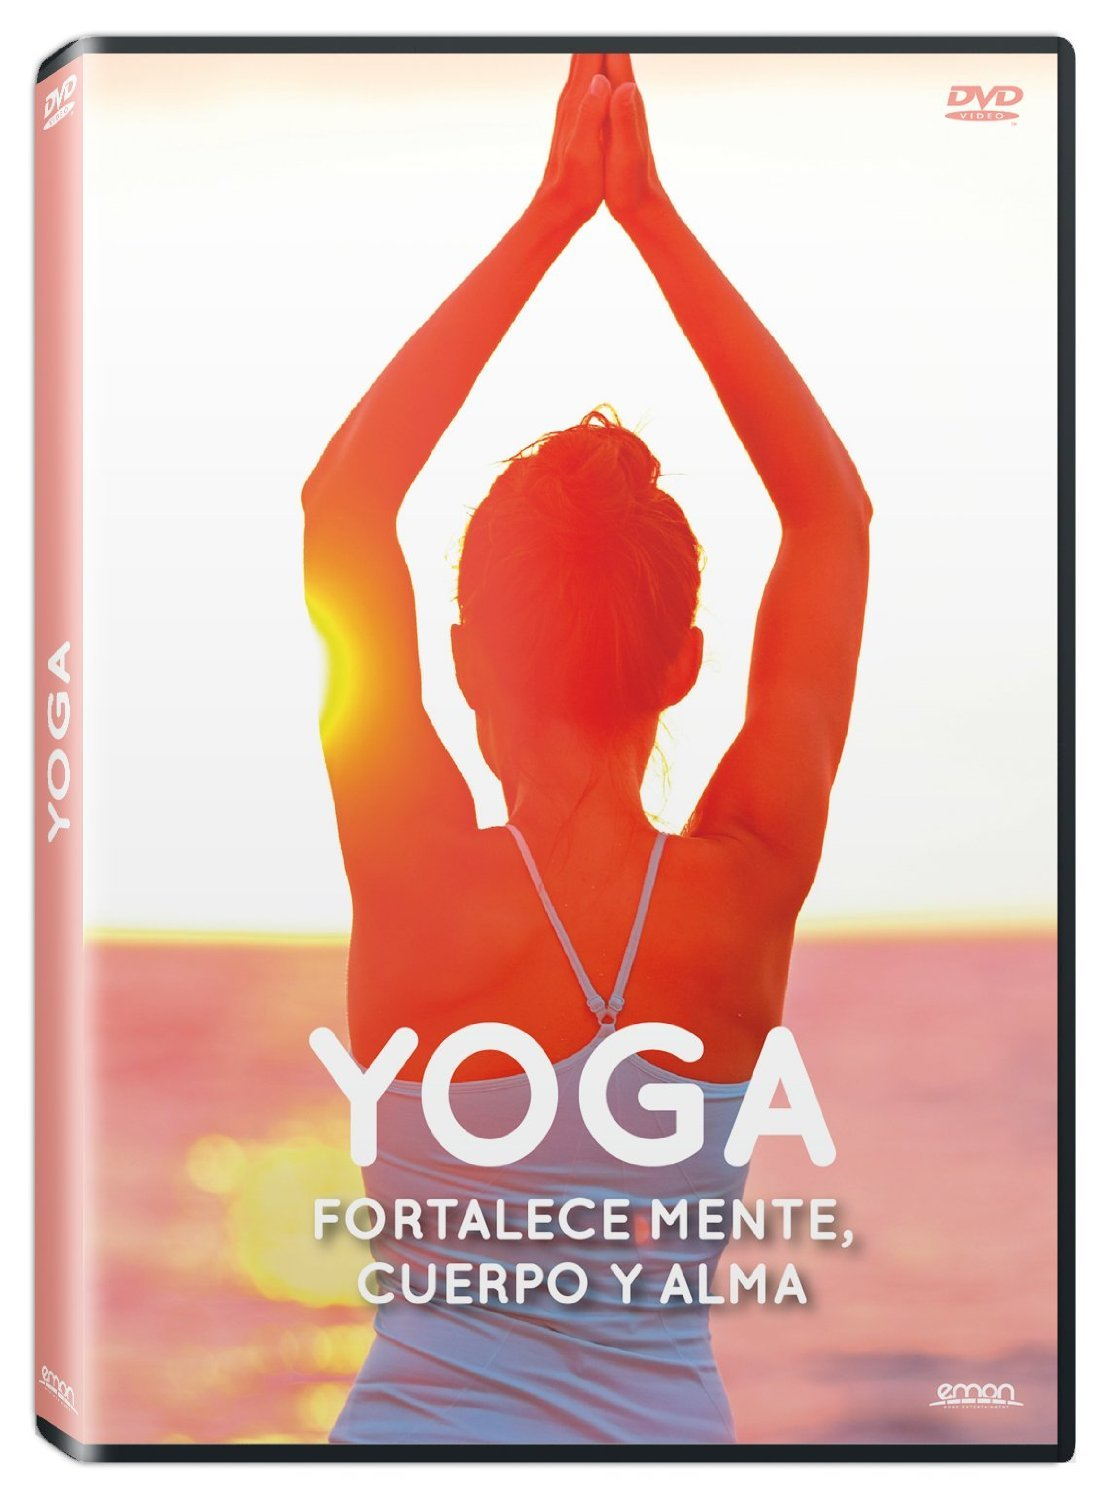 Yoga [DVD]: Amazon.es: No Disponble: Cine y Series TV